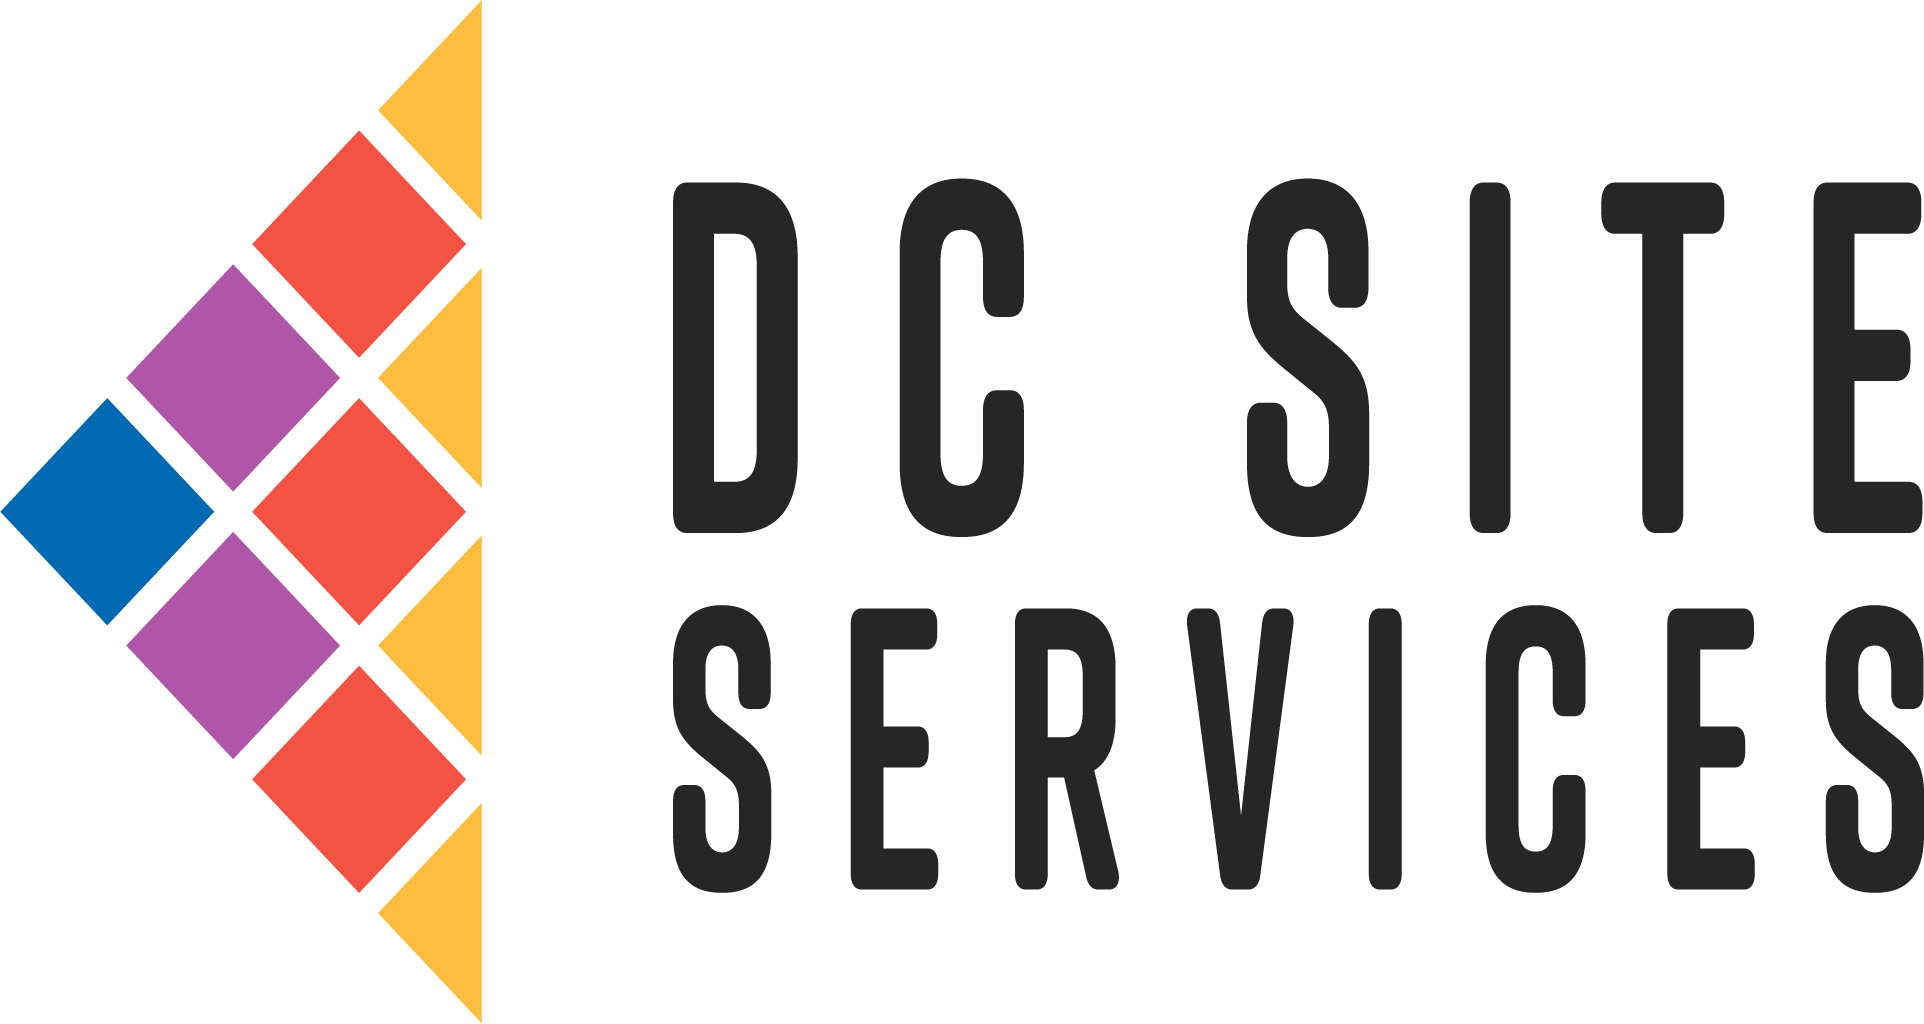 DC Site Services